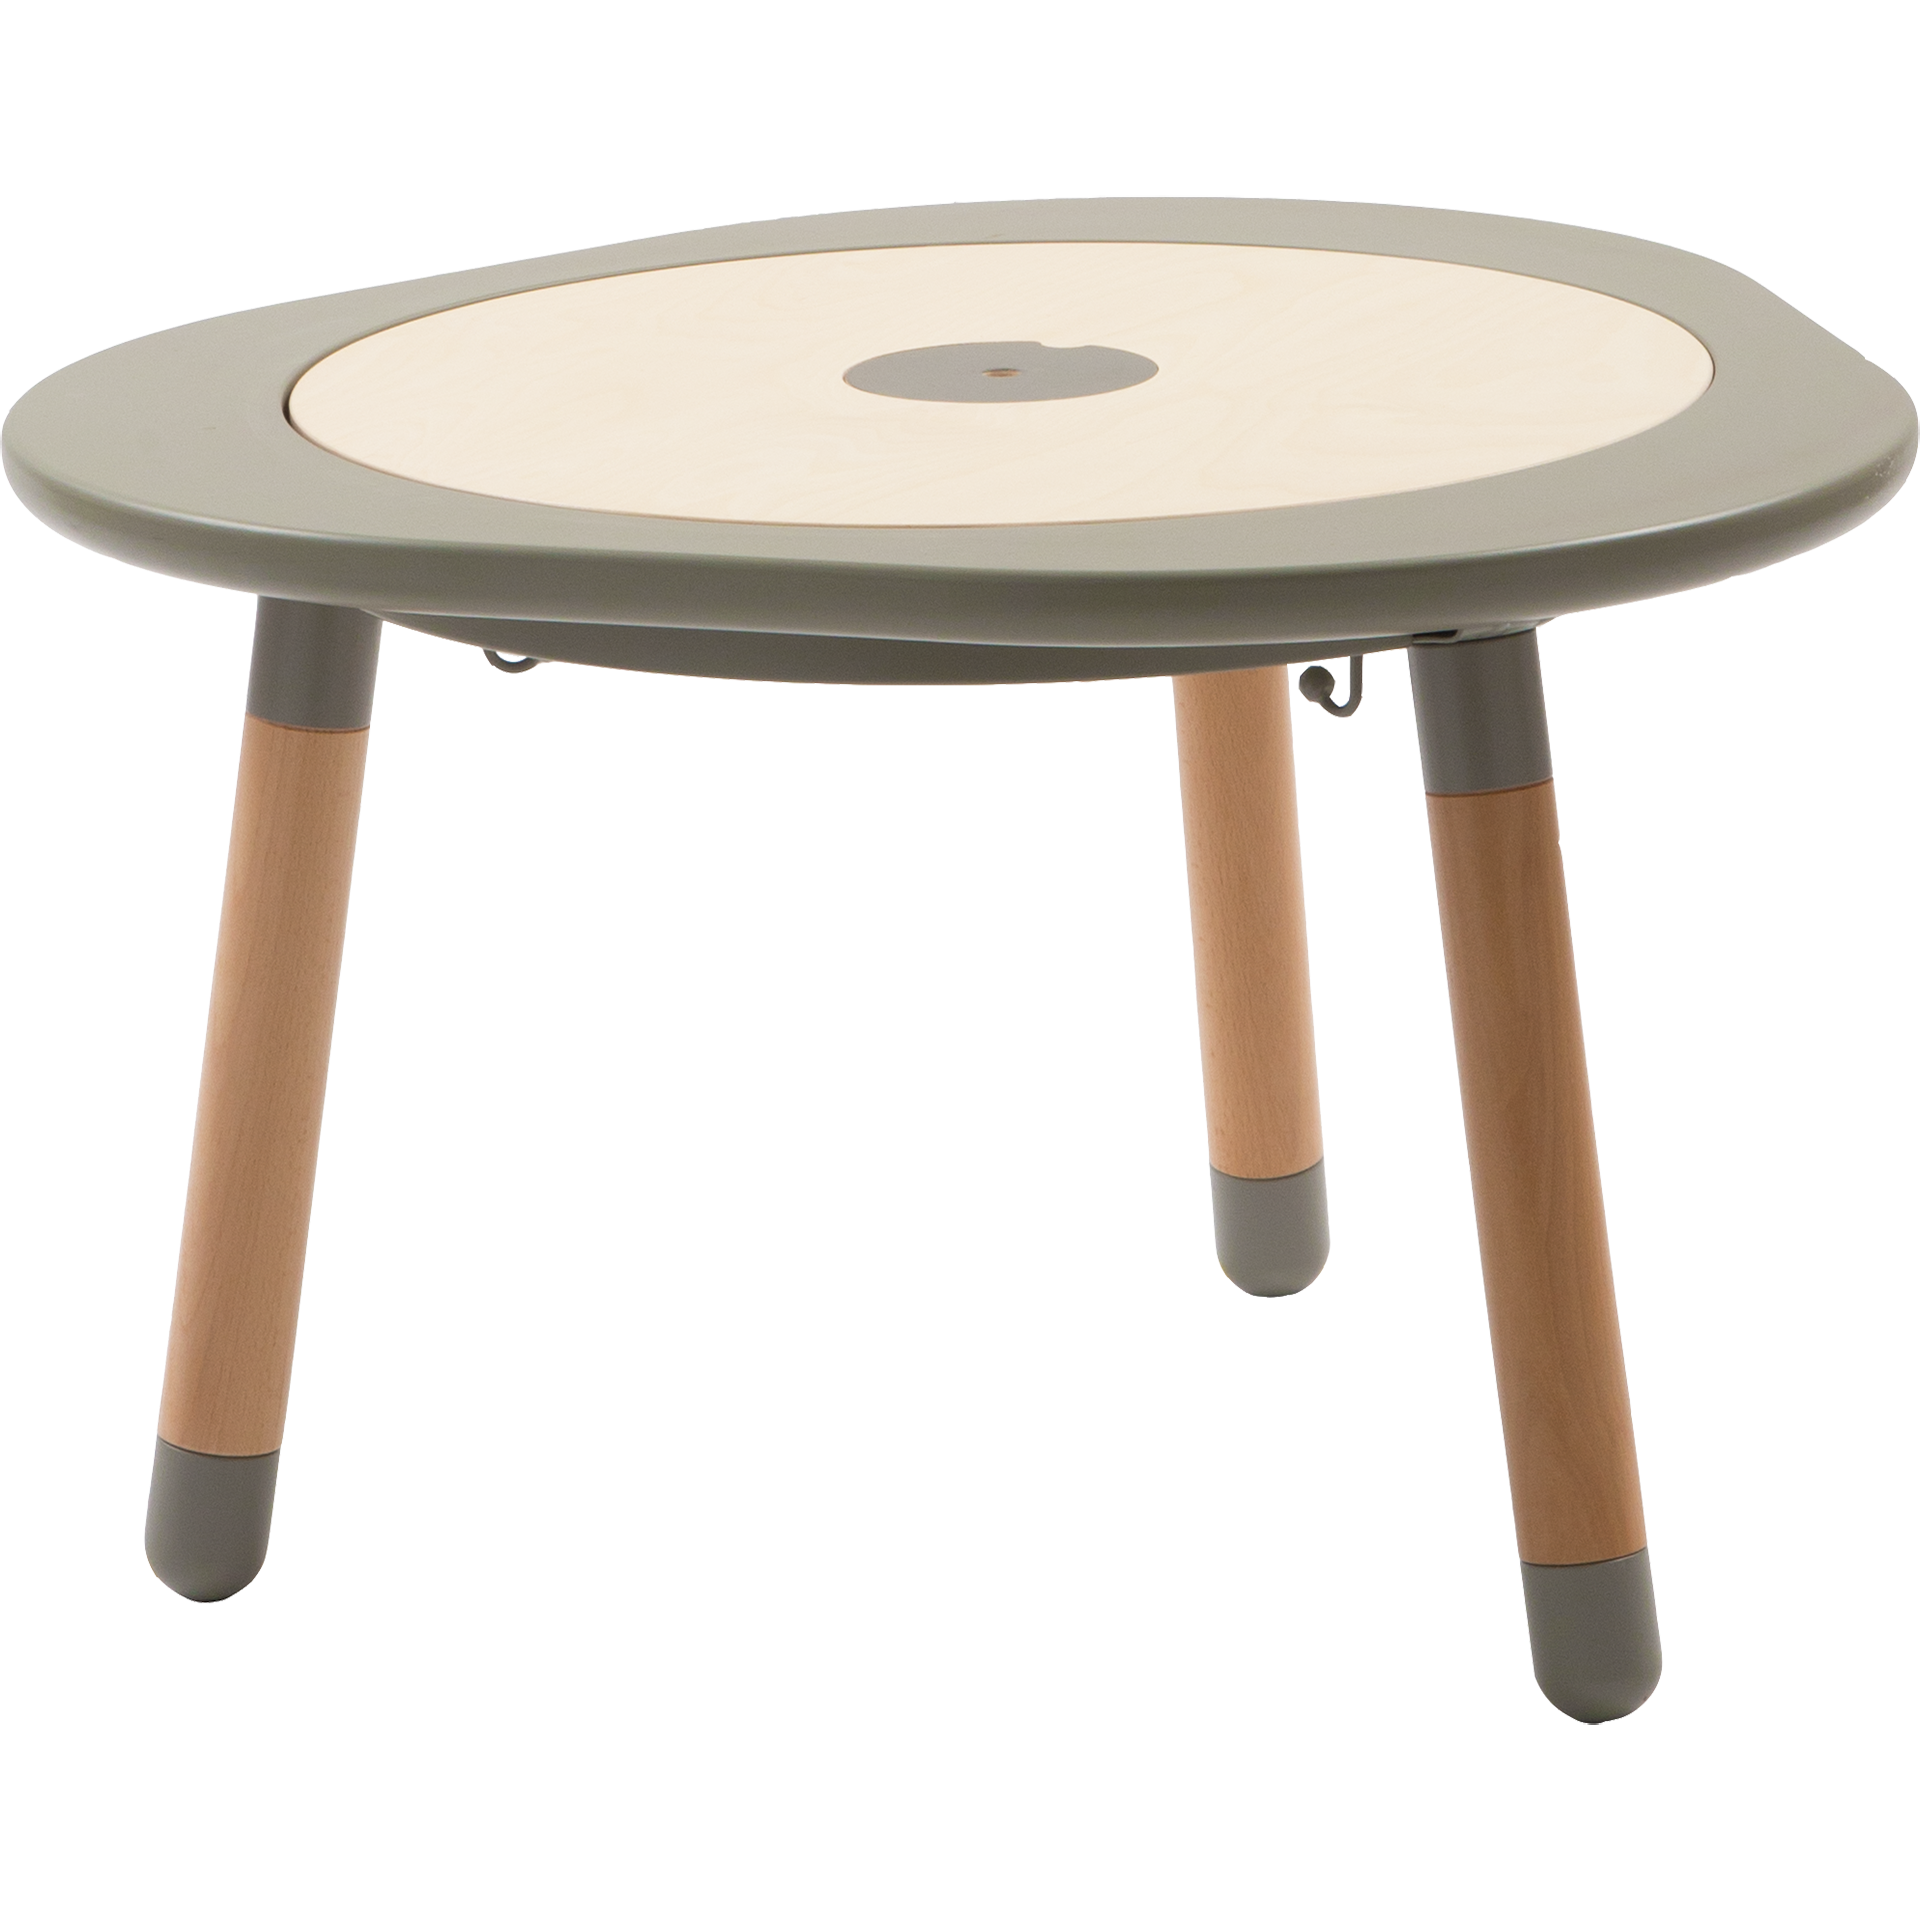 Clipart table old table. Mutable toys the multi